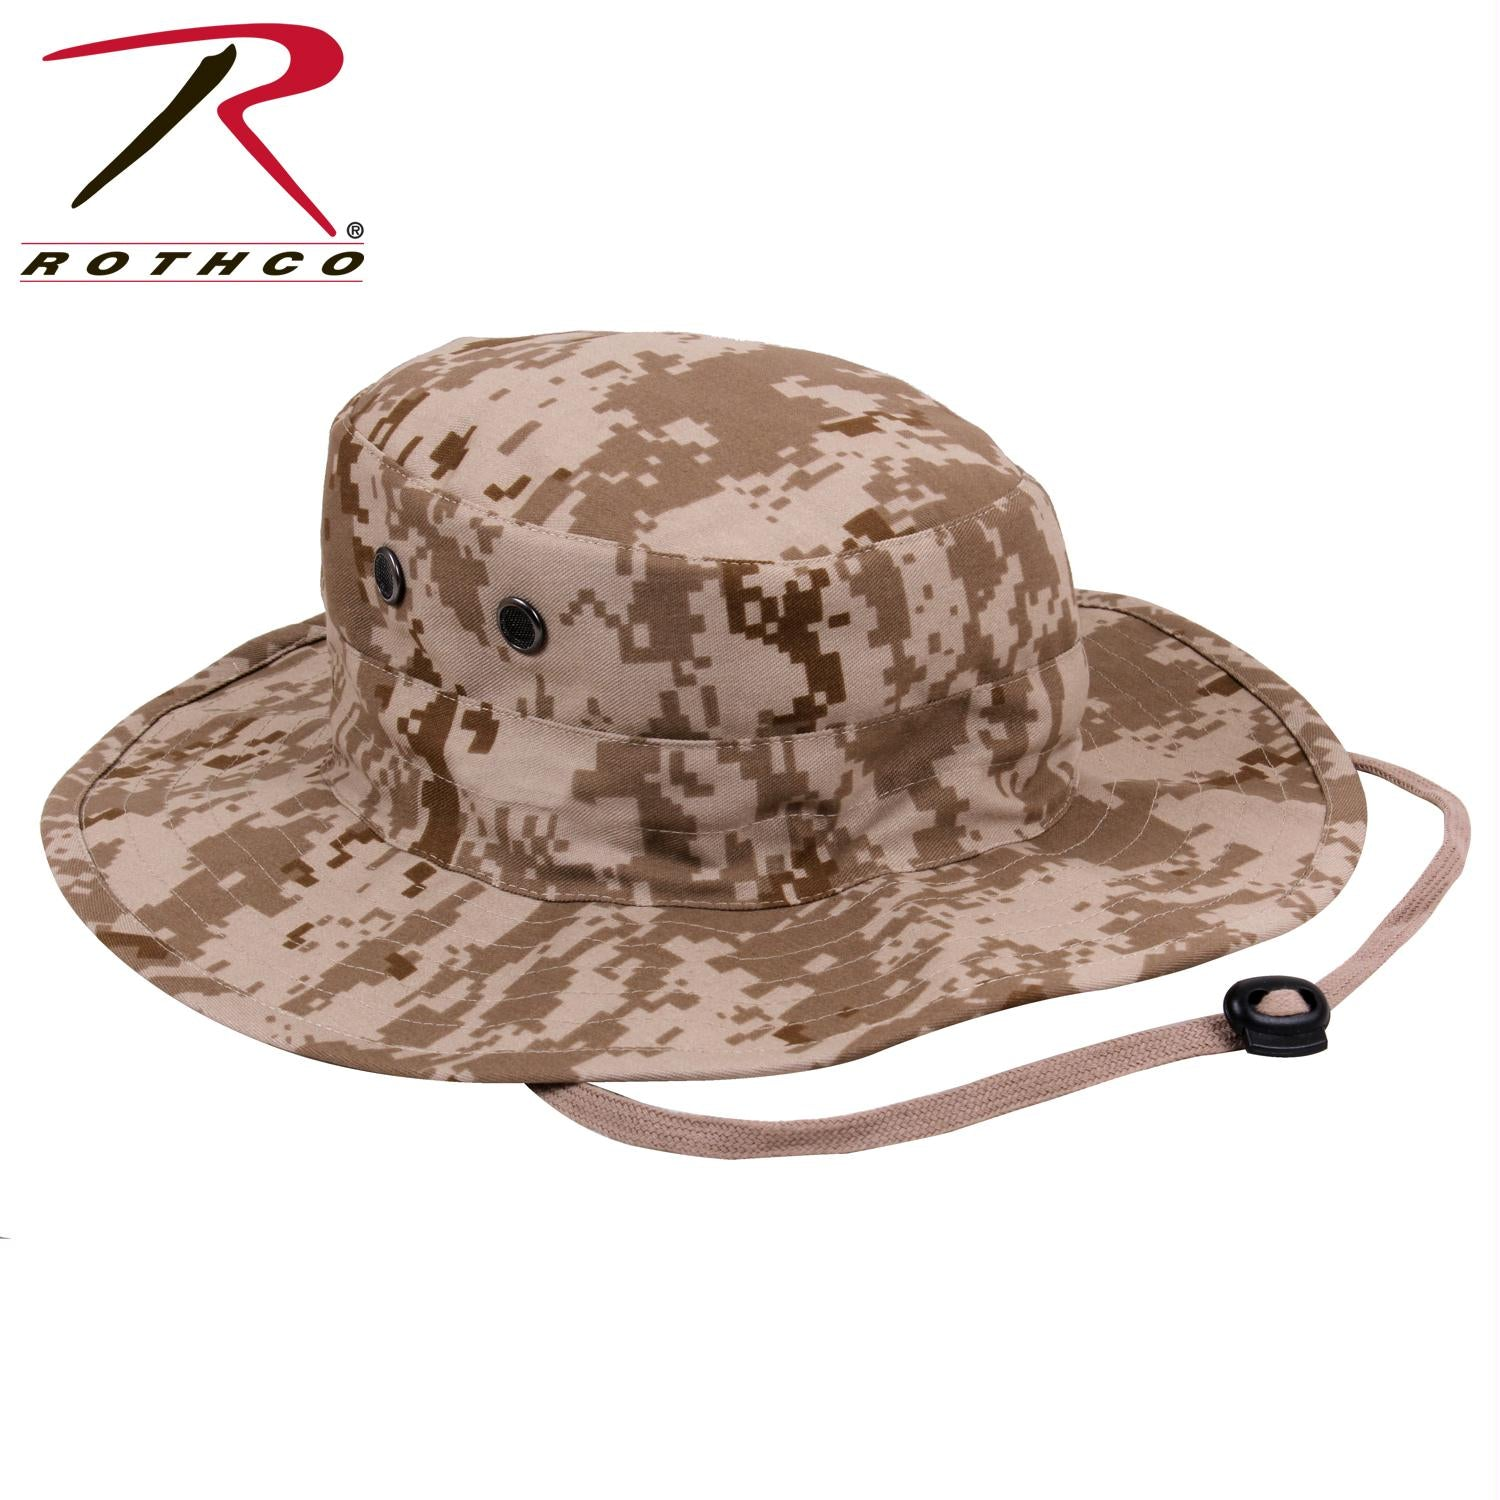 Rothco Adjustable Boonie Hat - Desert Digital Camo / One Size